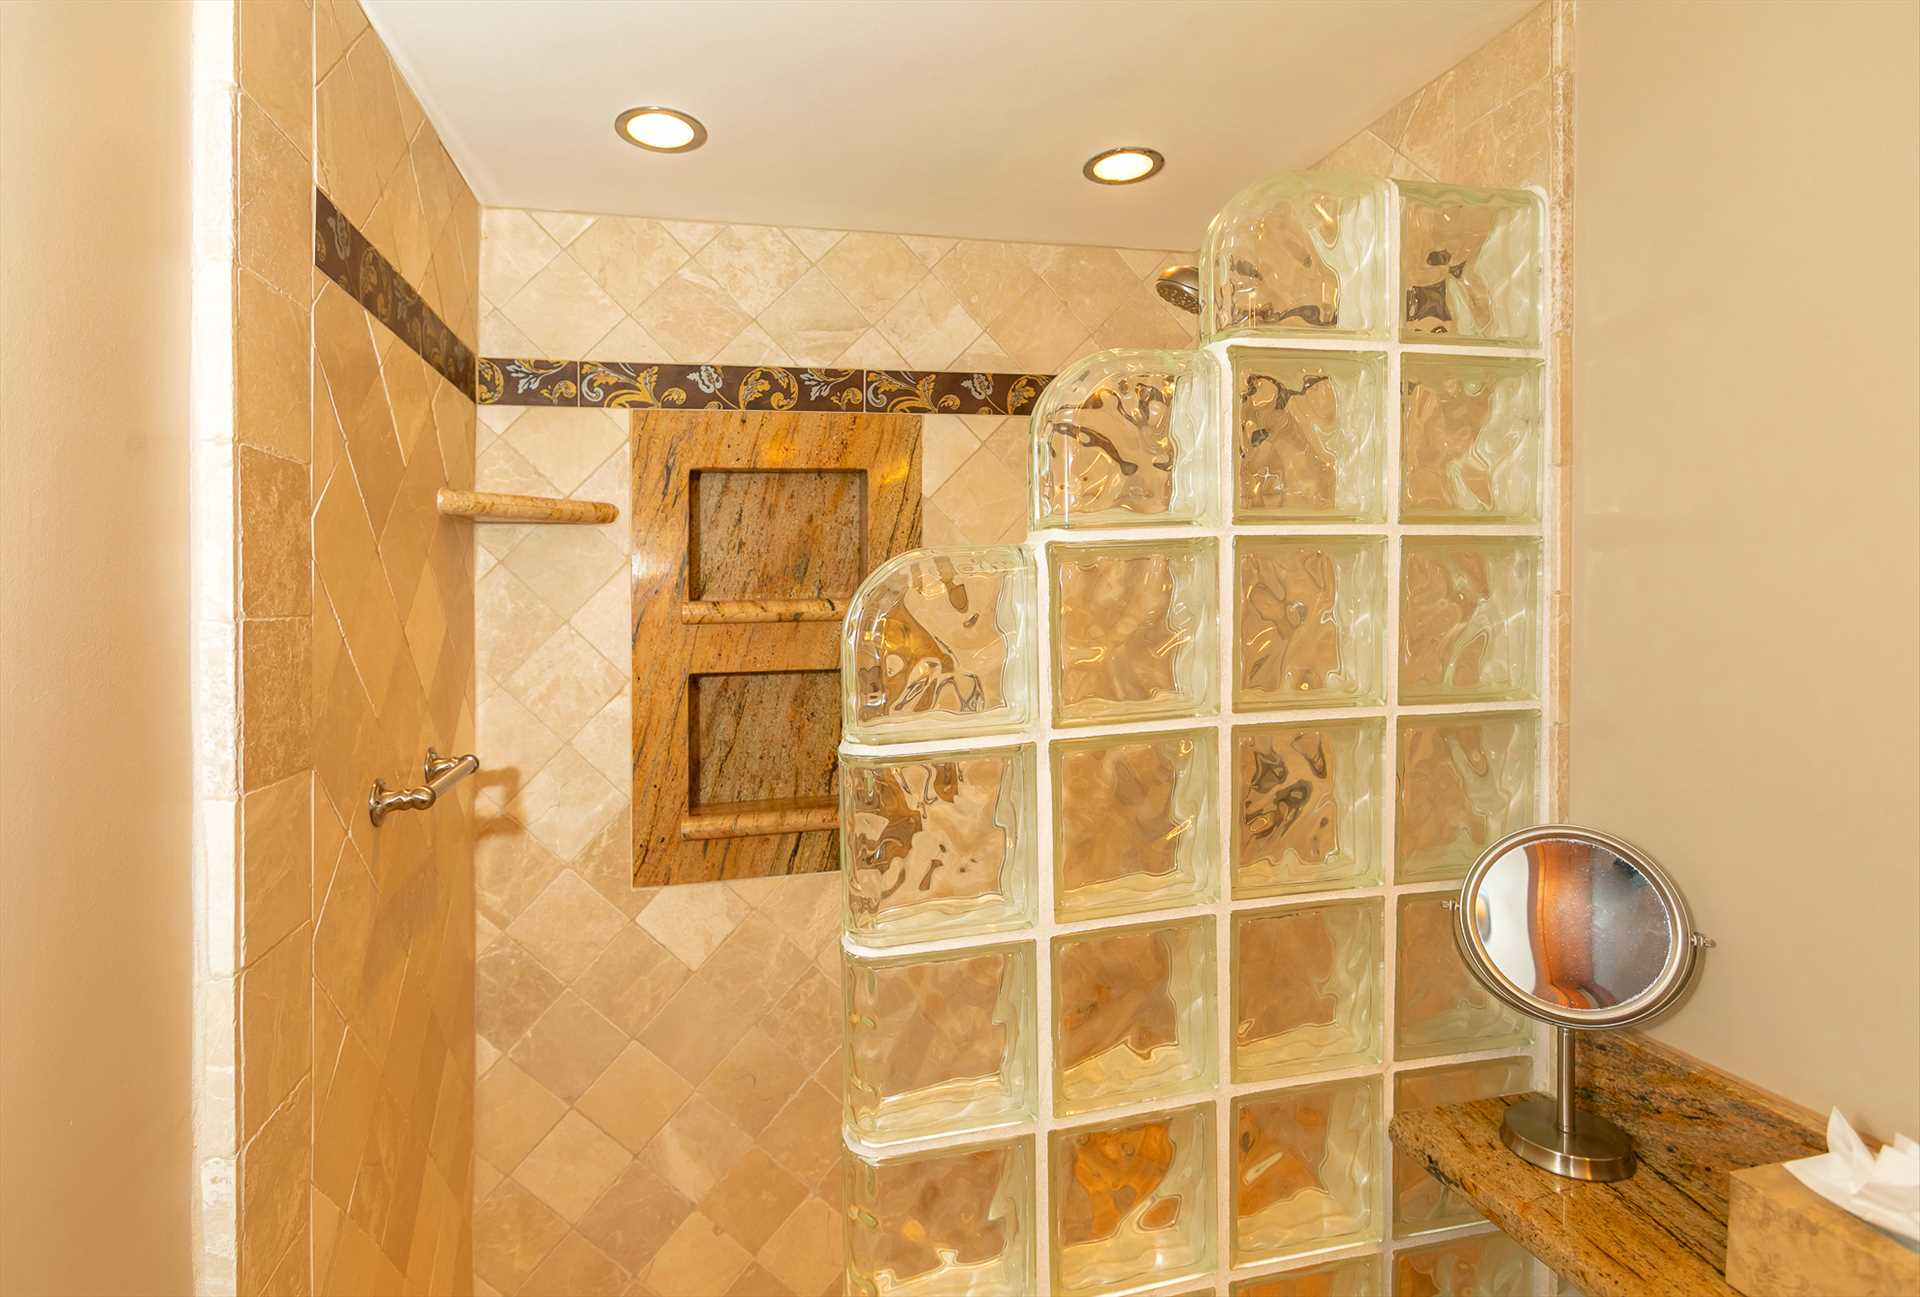 Glass block enclosed step-in shower